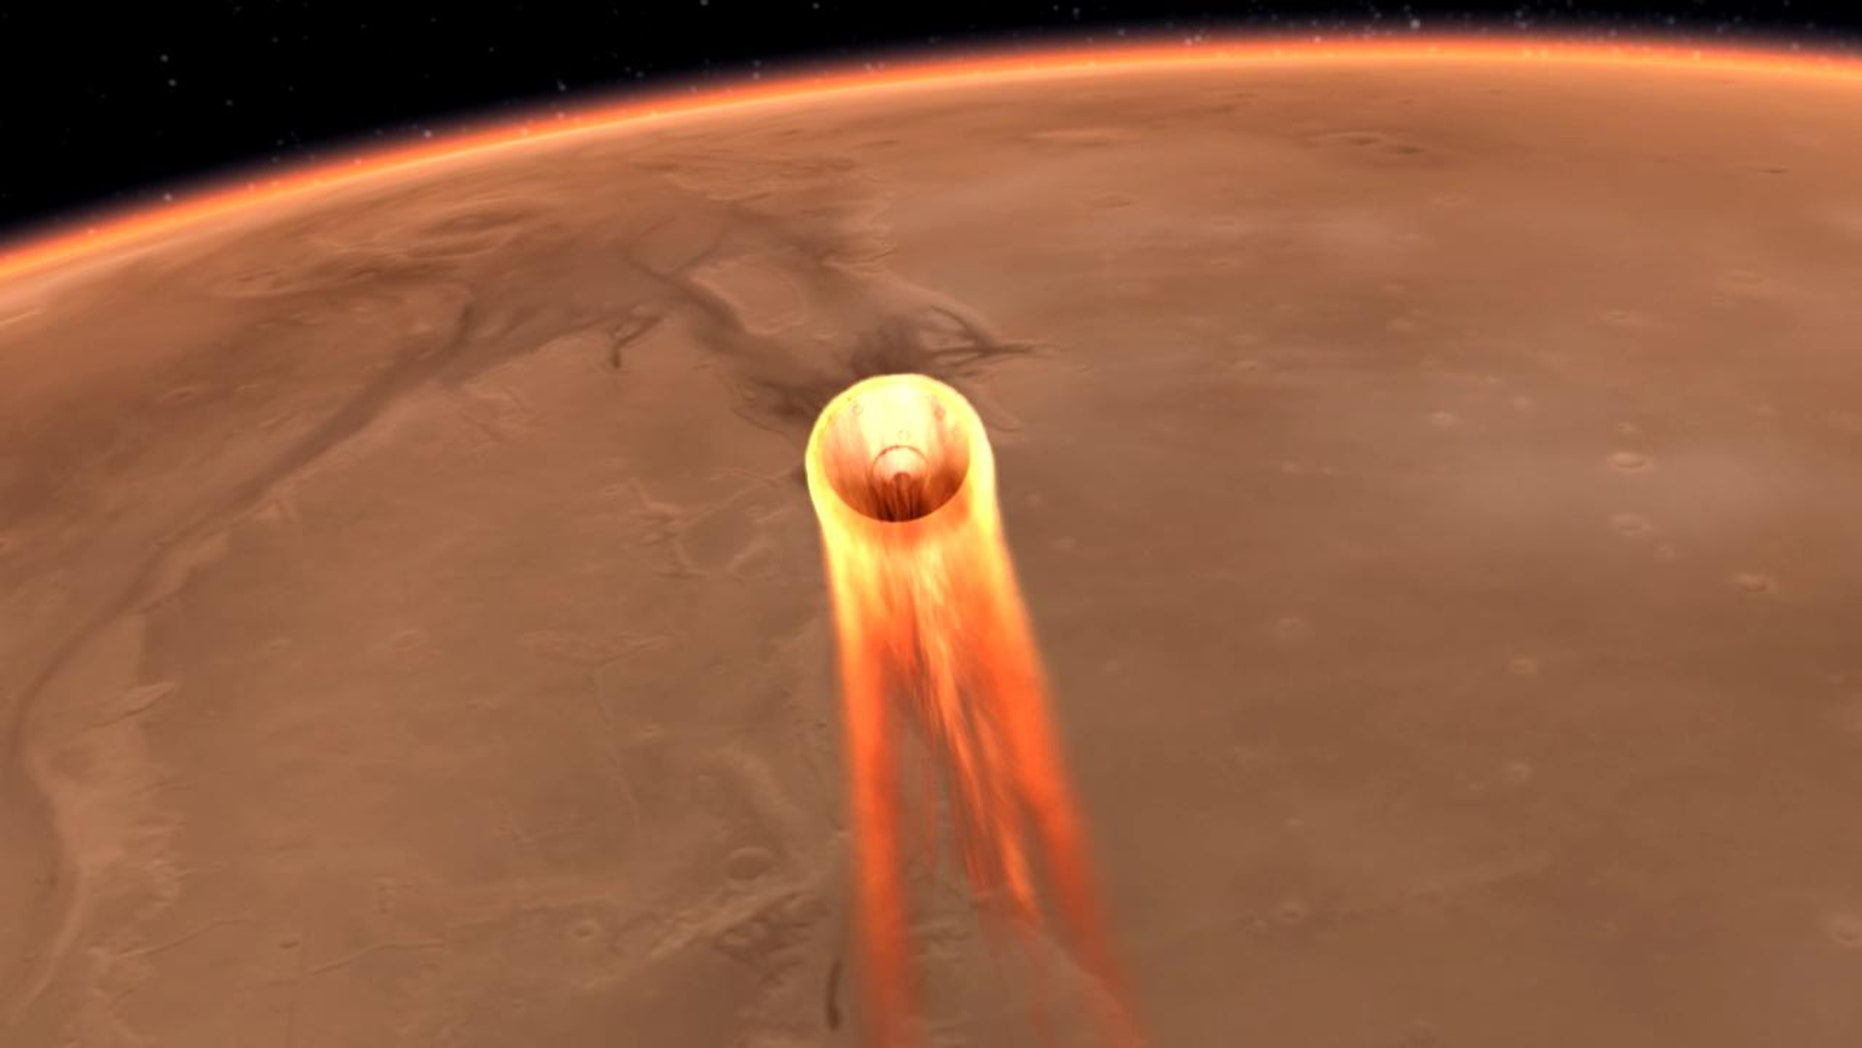 An artist's impression of NASA InSight's entry, descent and landing at Mars, scheduled for Nov. 26, 2018. Image (Credit: NASA/JPL-Caltech)